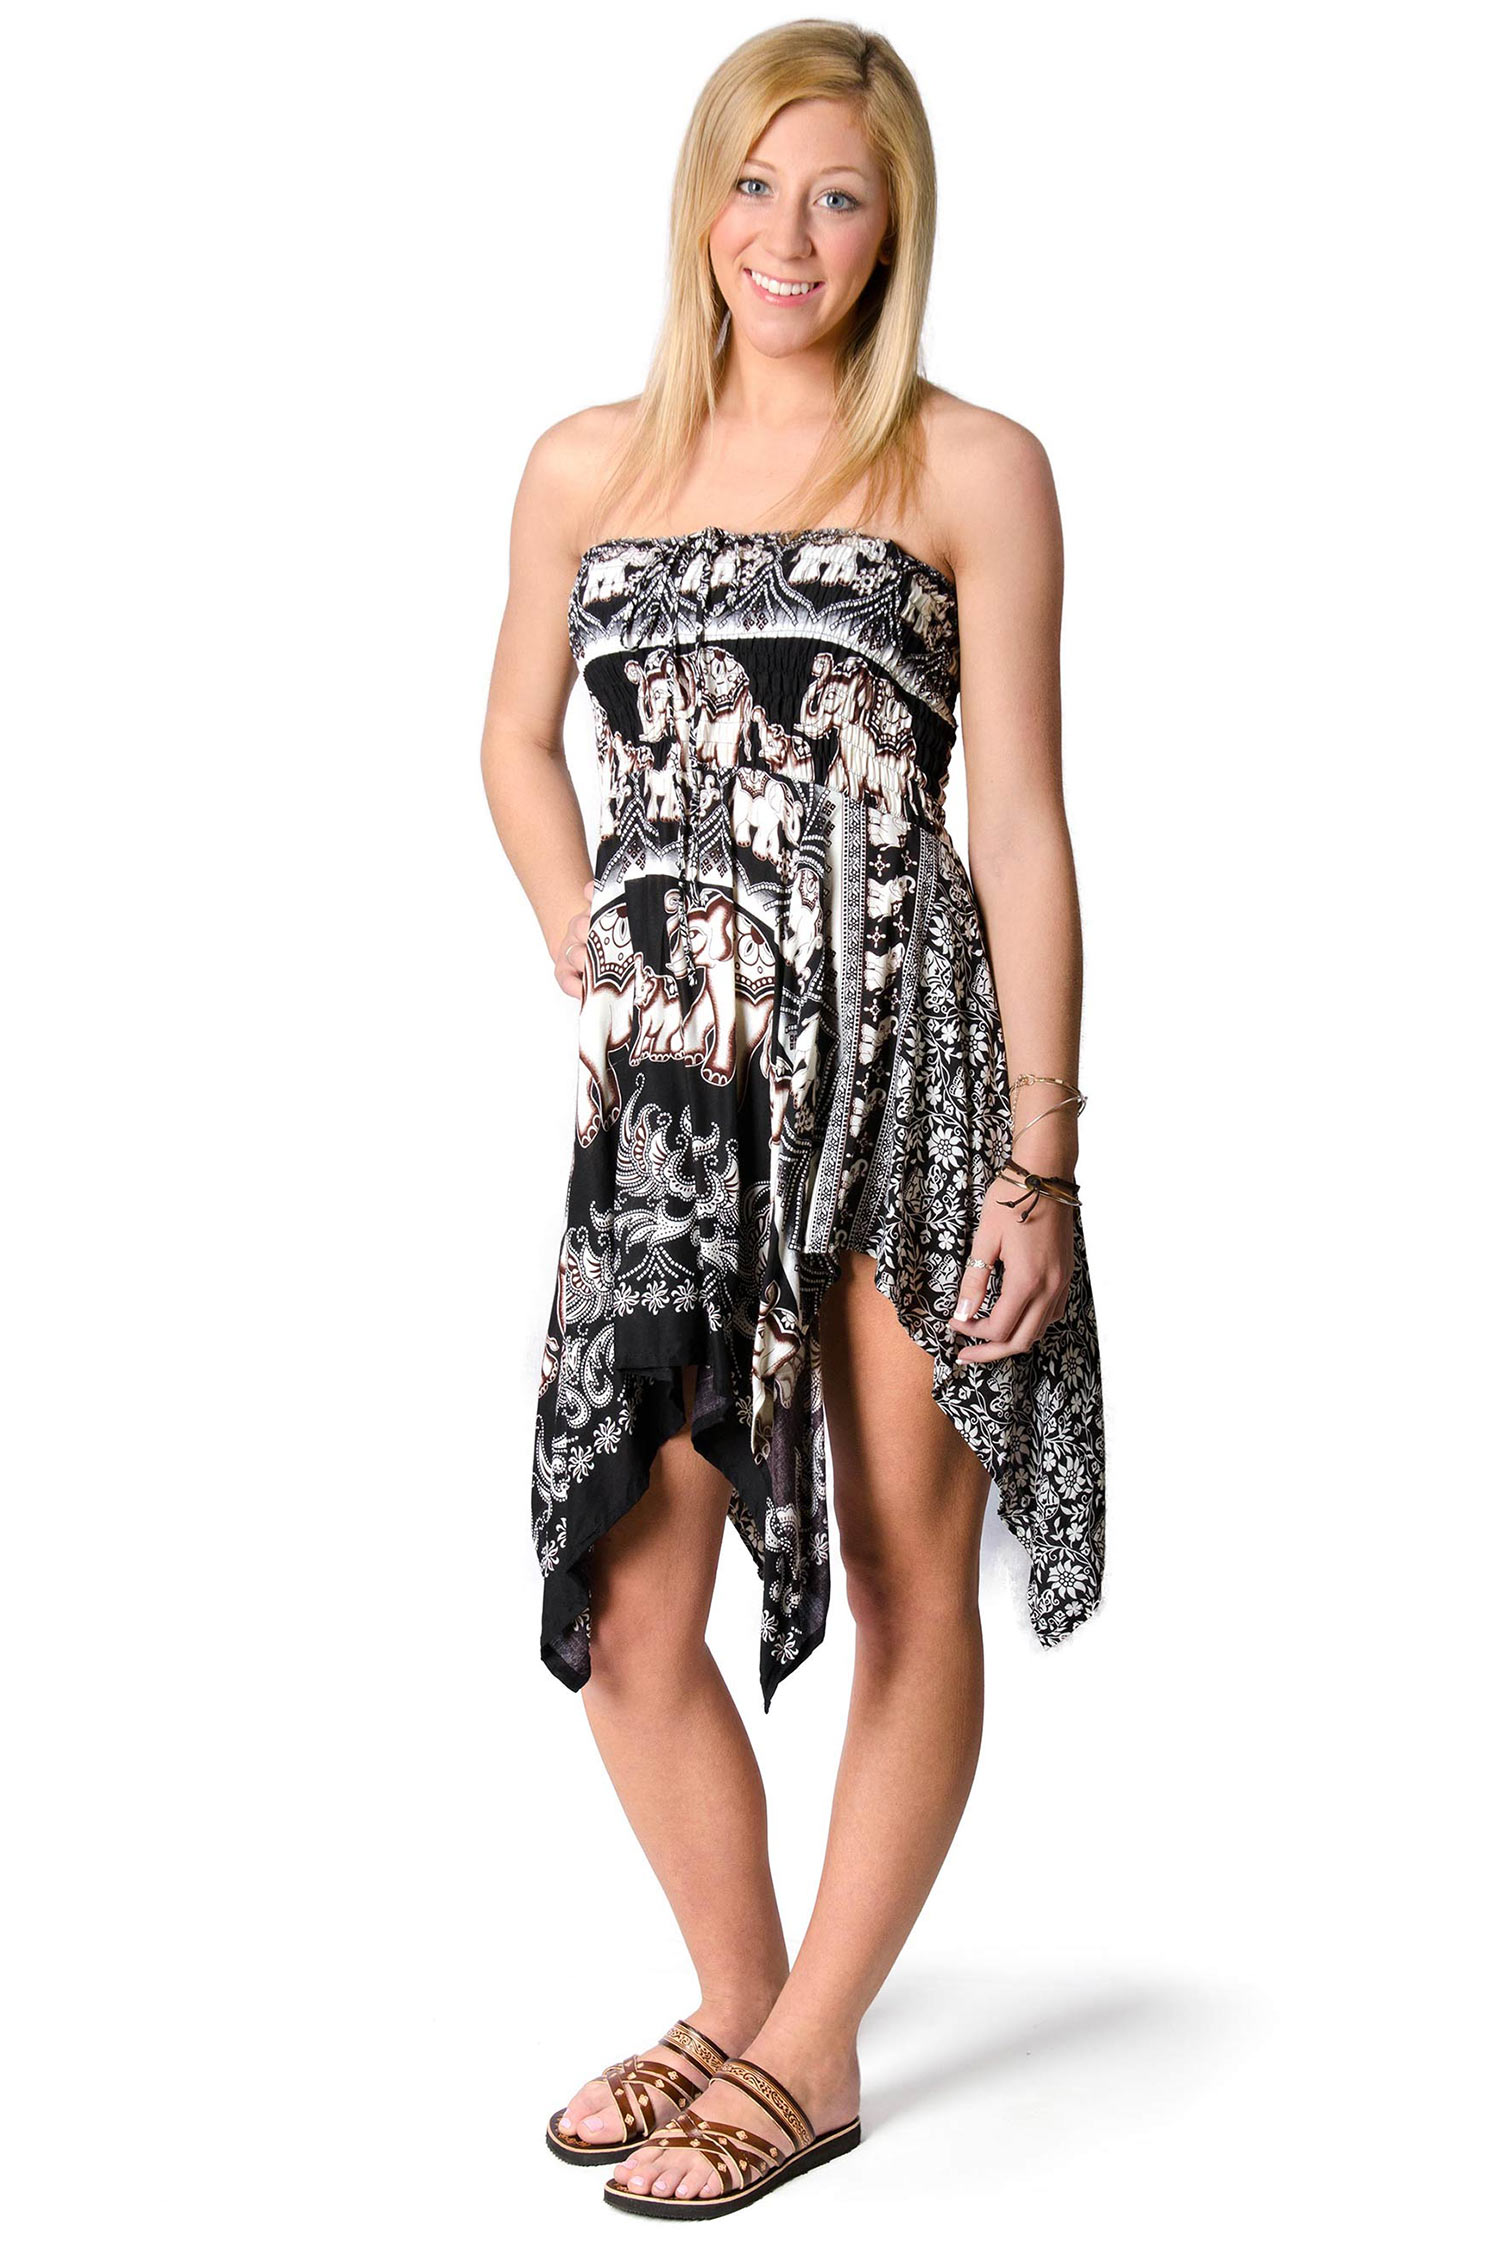 Elephant Print Convertible Fairy Dress - Skirt - Black